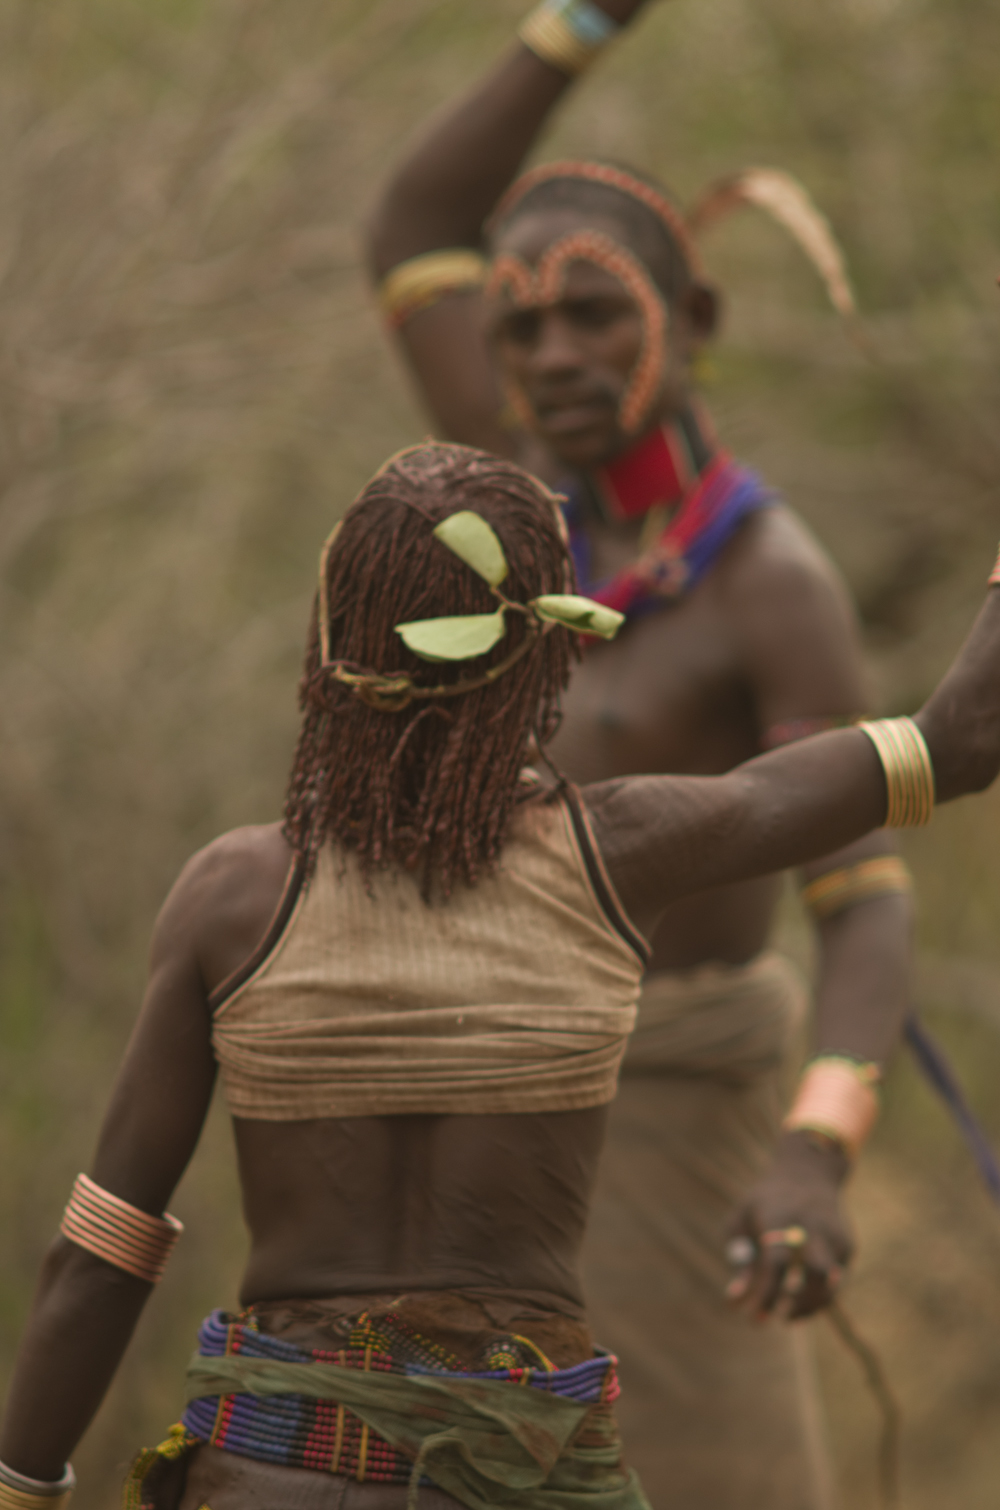 The hamer people in Omo valley have a long tradition for performing certain rituals including whipping of the women and the men jumping over bulls. Photo © Mikkel Grabowski 2012